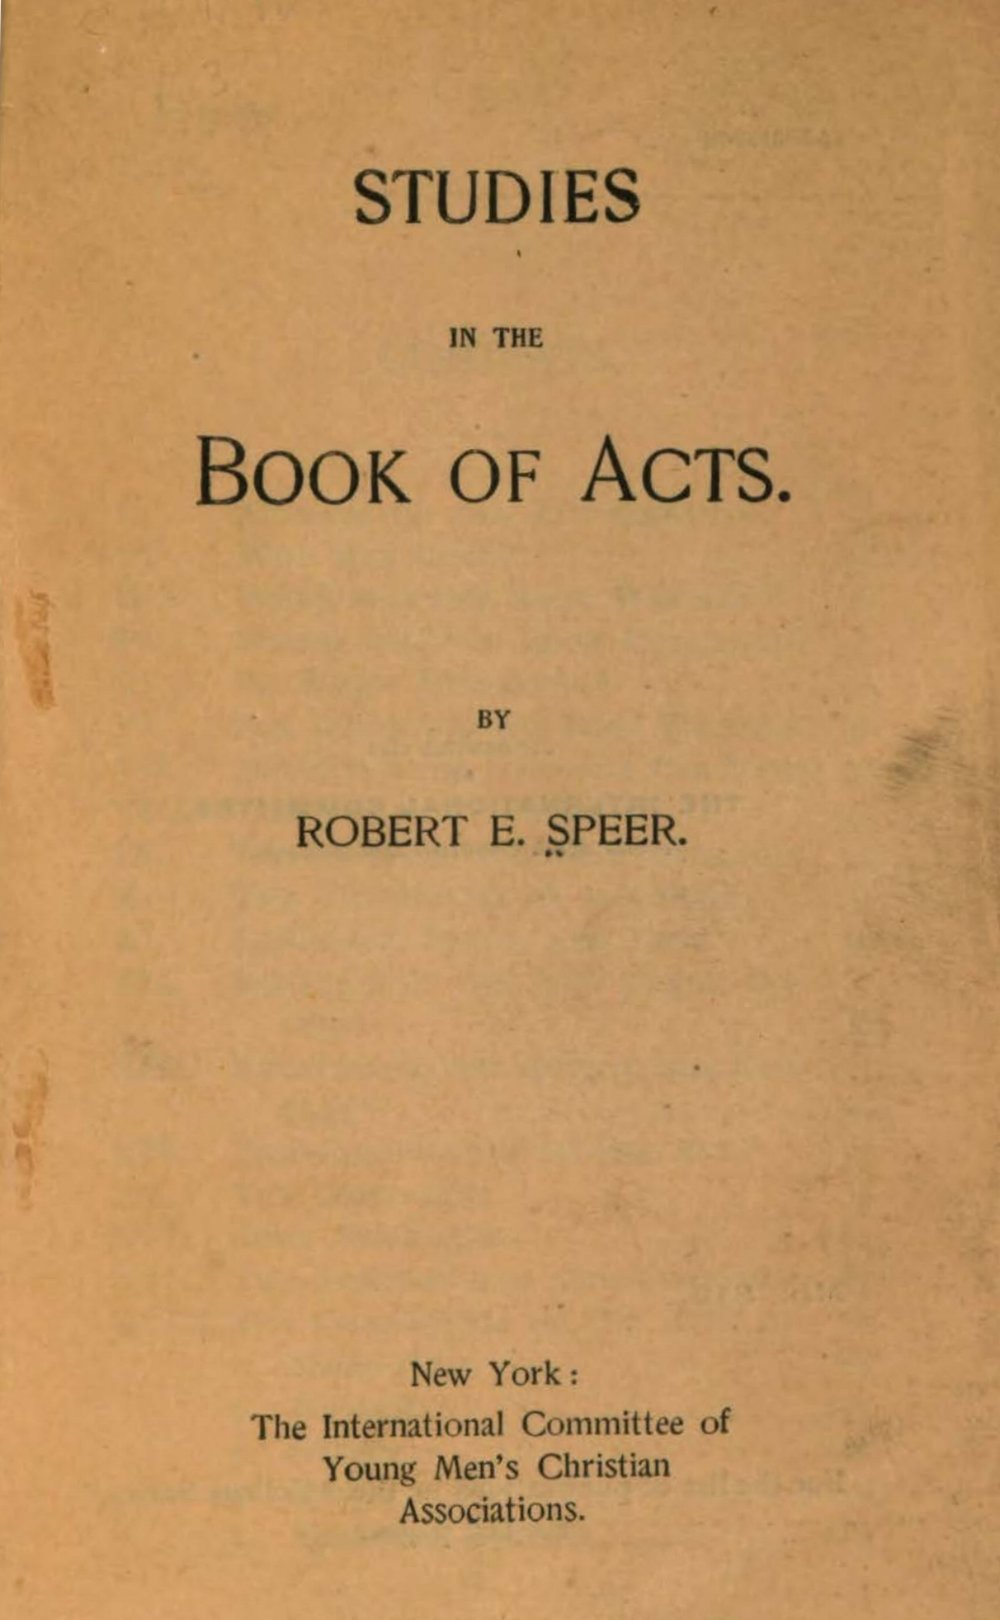 Speer, Robert Elliott, Studies in the Book of Acts Title Page.jpg